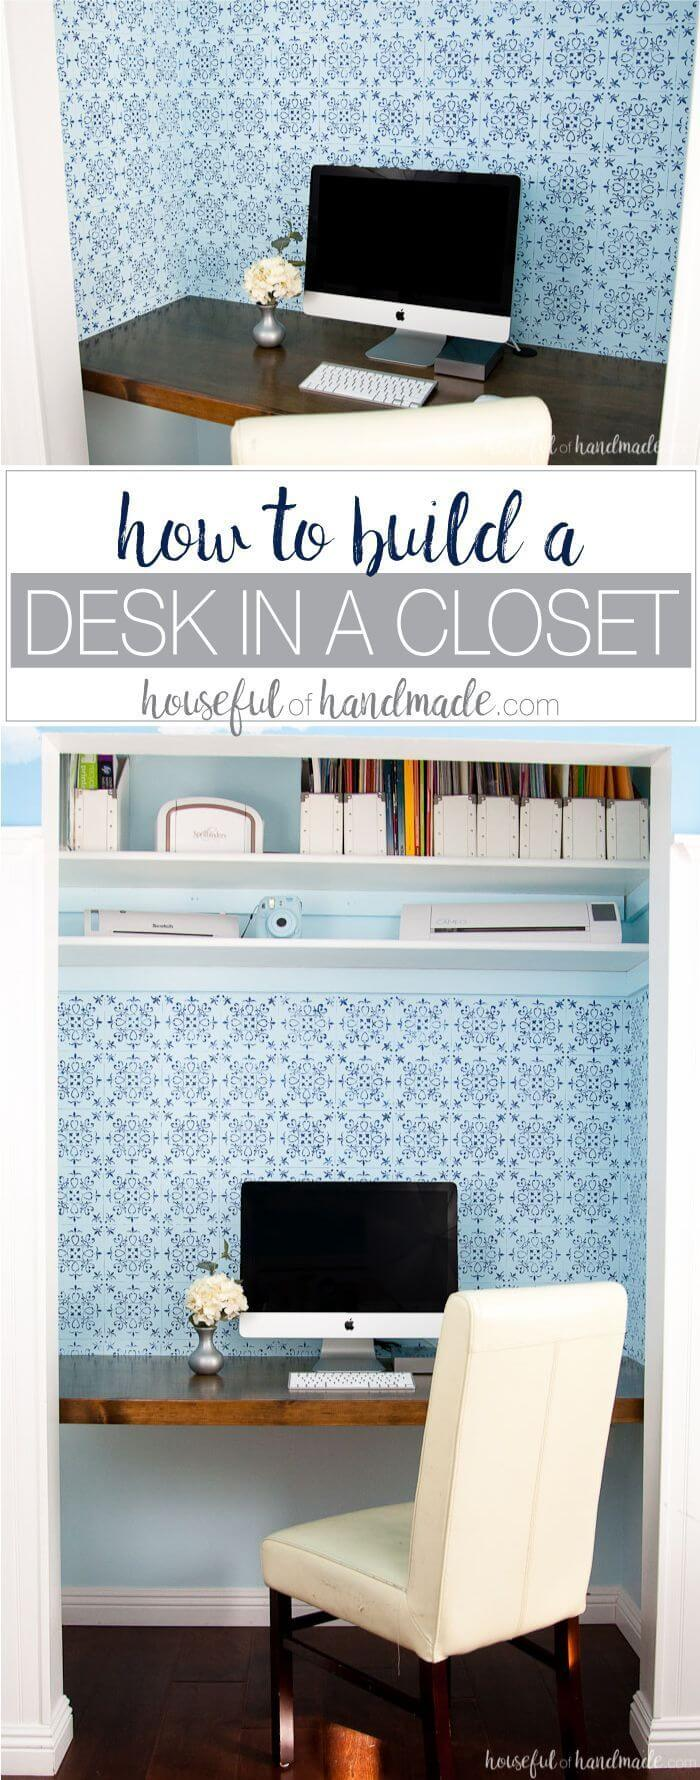 DIY Desk Ideas to Transform Closets